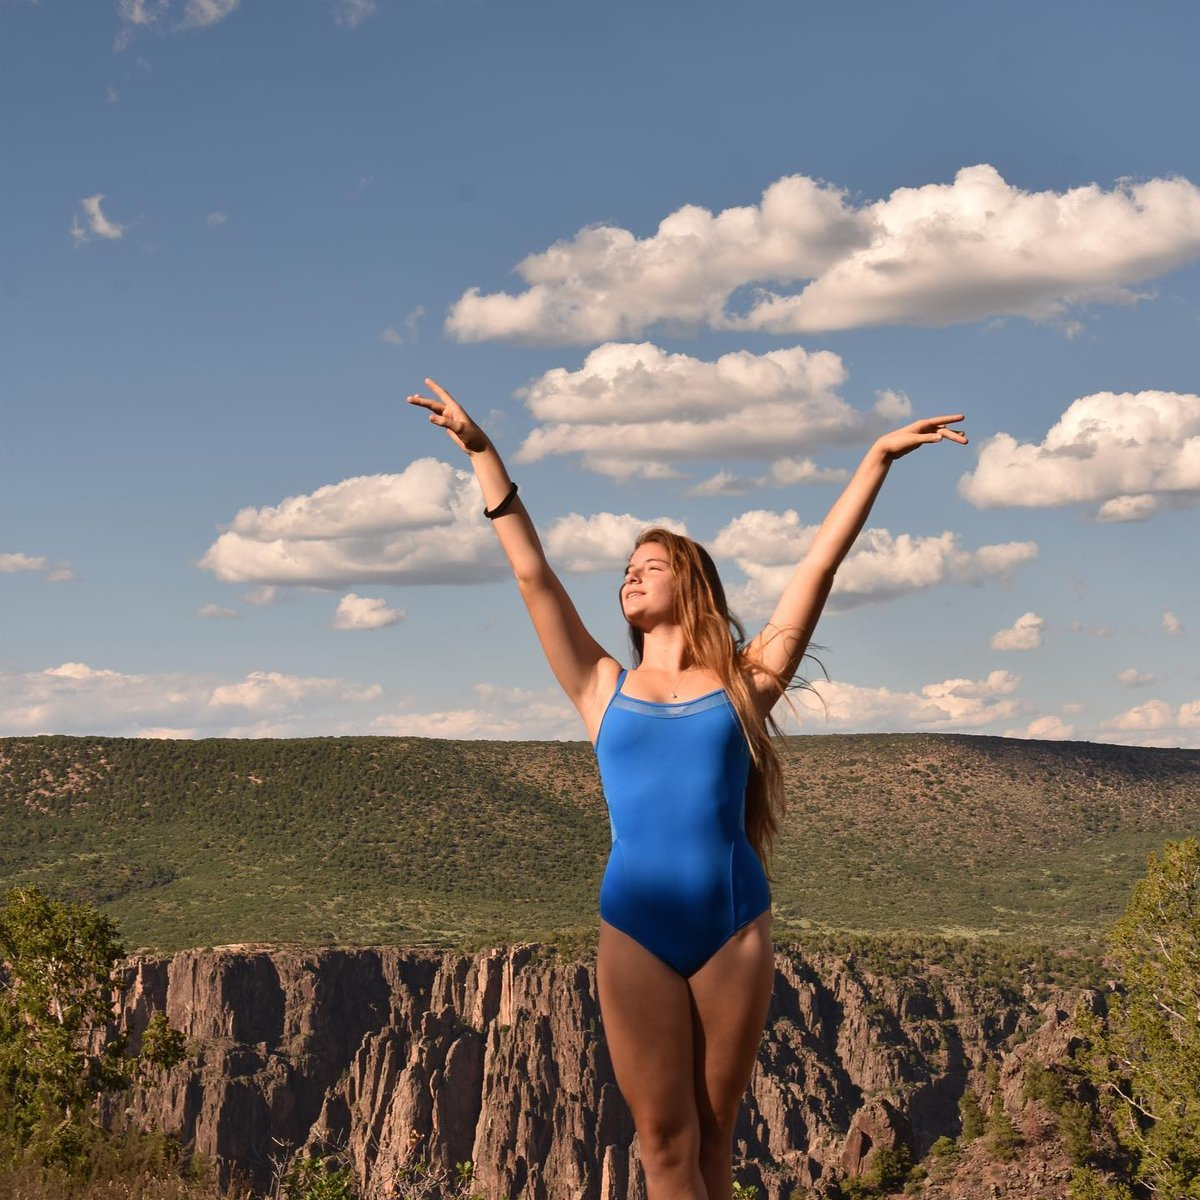 We can't decide which we love more...@frederiquecanion in this beautiful blue leotard or Mother Nature showing off in the background! #repost #blackcanyoncolorado #colorado #dancelife #youngdancers #instadance #instagram #instapassion #love# ( # @frederiquecanion )pic.twitter.com/oabGFI6Pg8